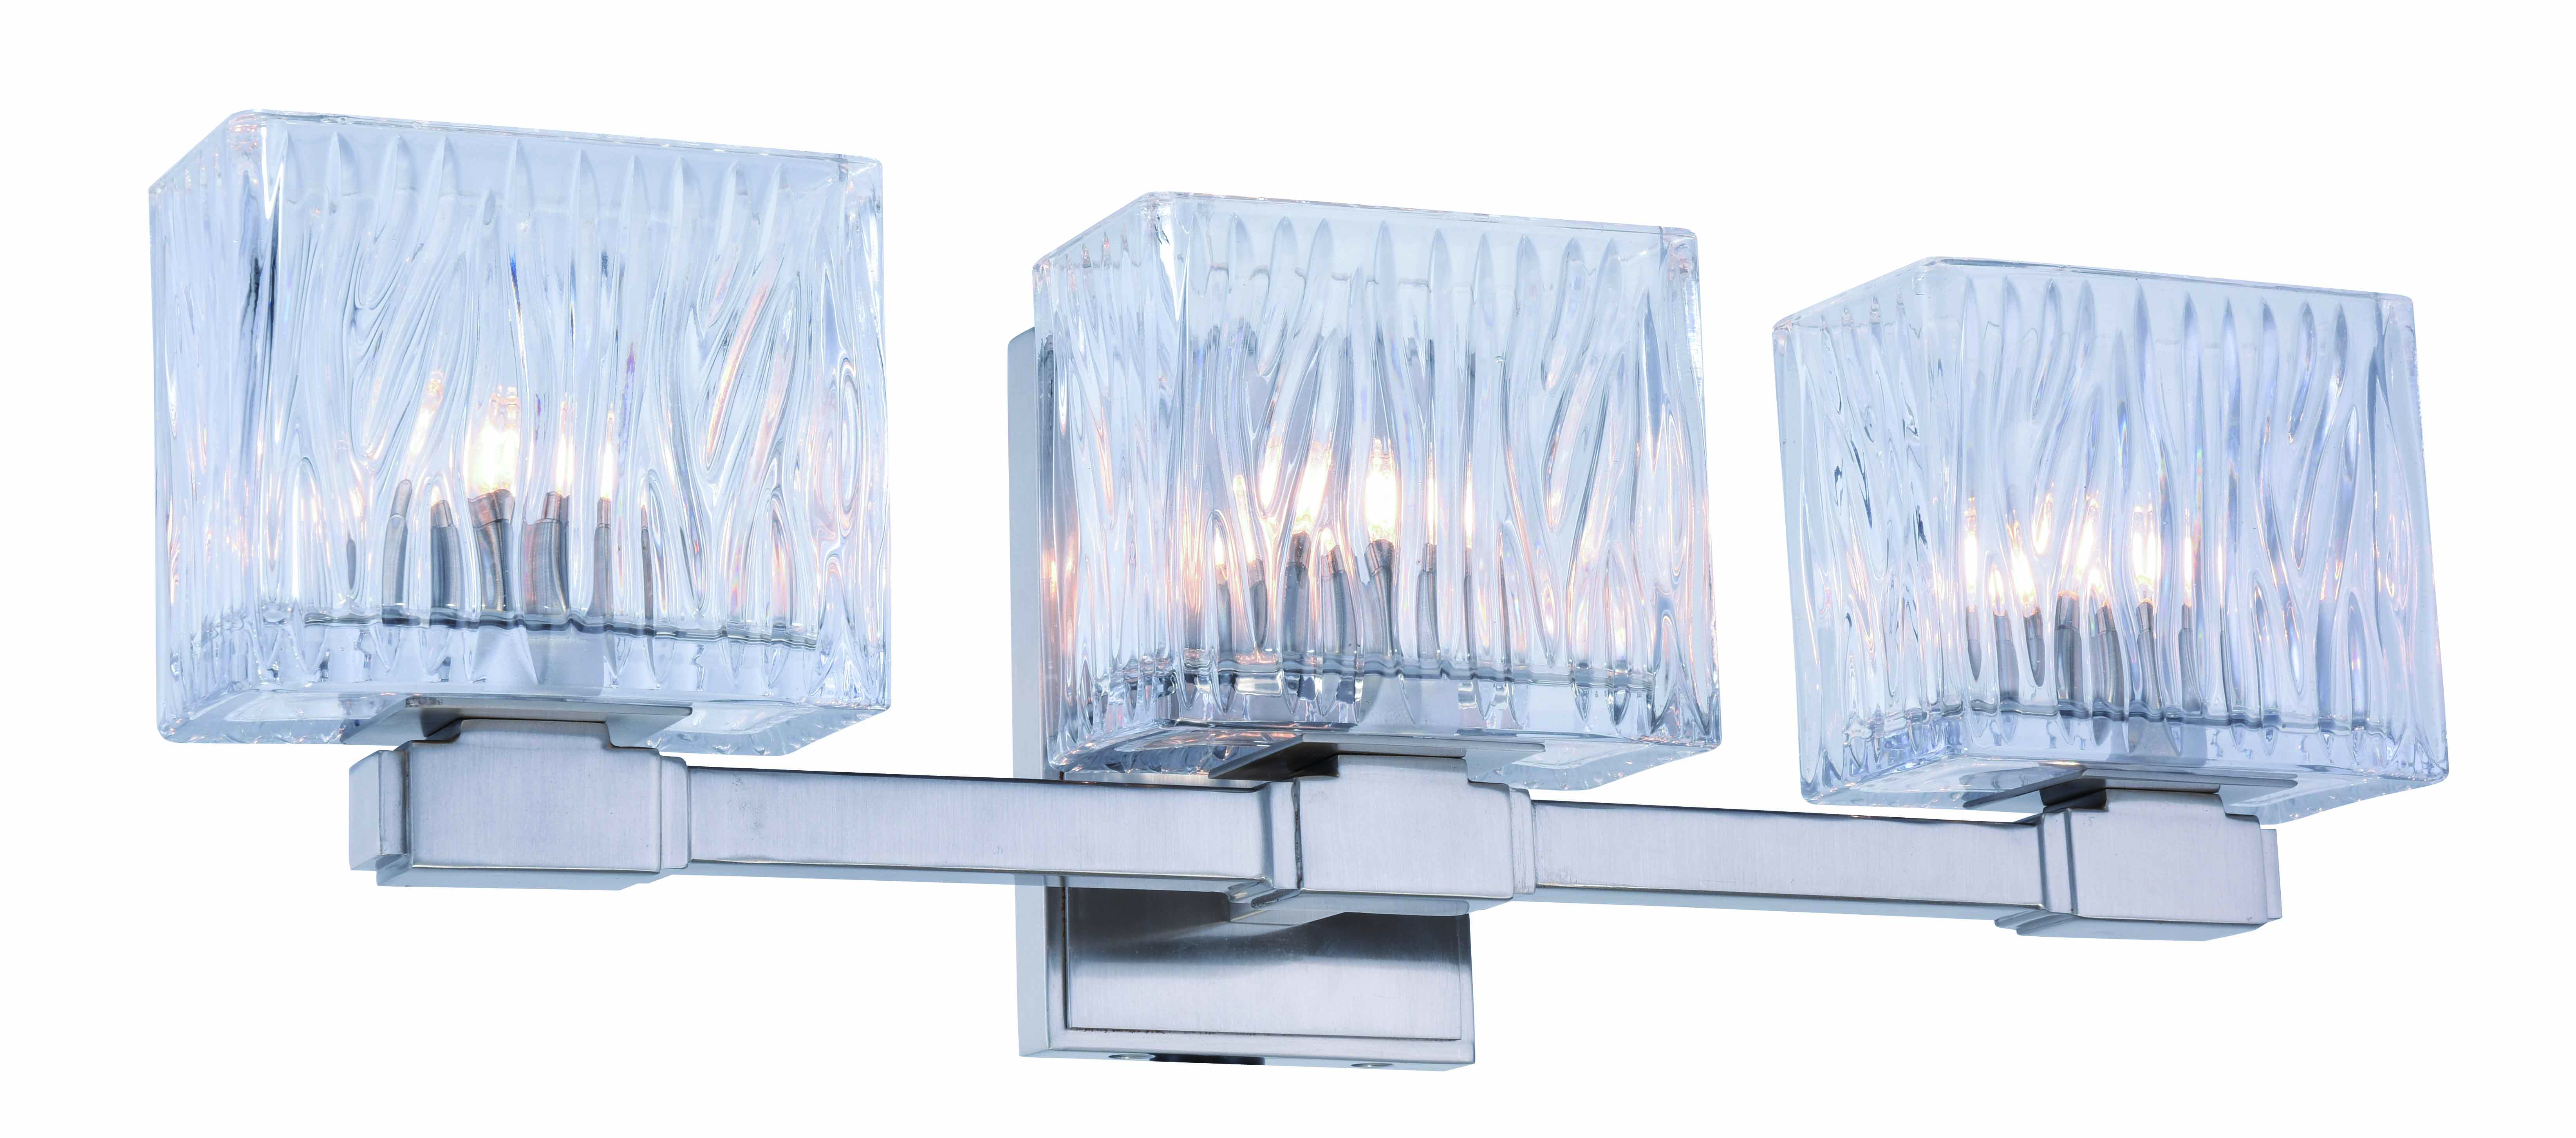 Torrent Collection 3-Light Burnished Nickel Finish Wall Sconce, Vanity